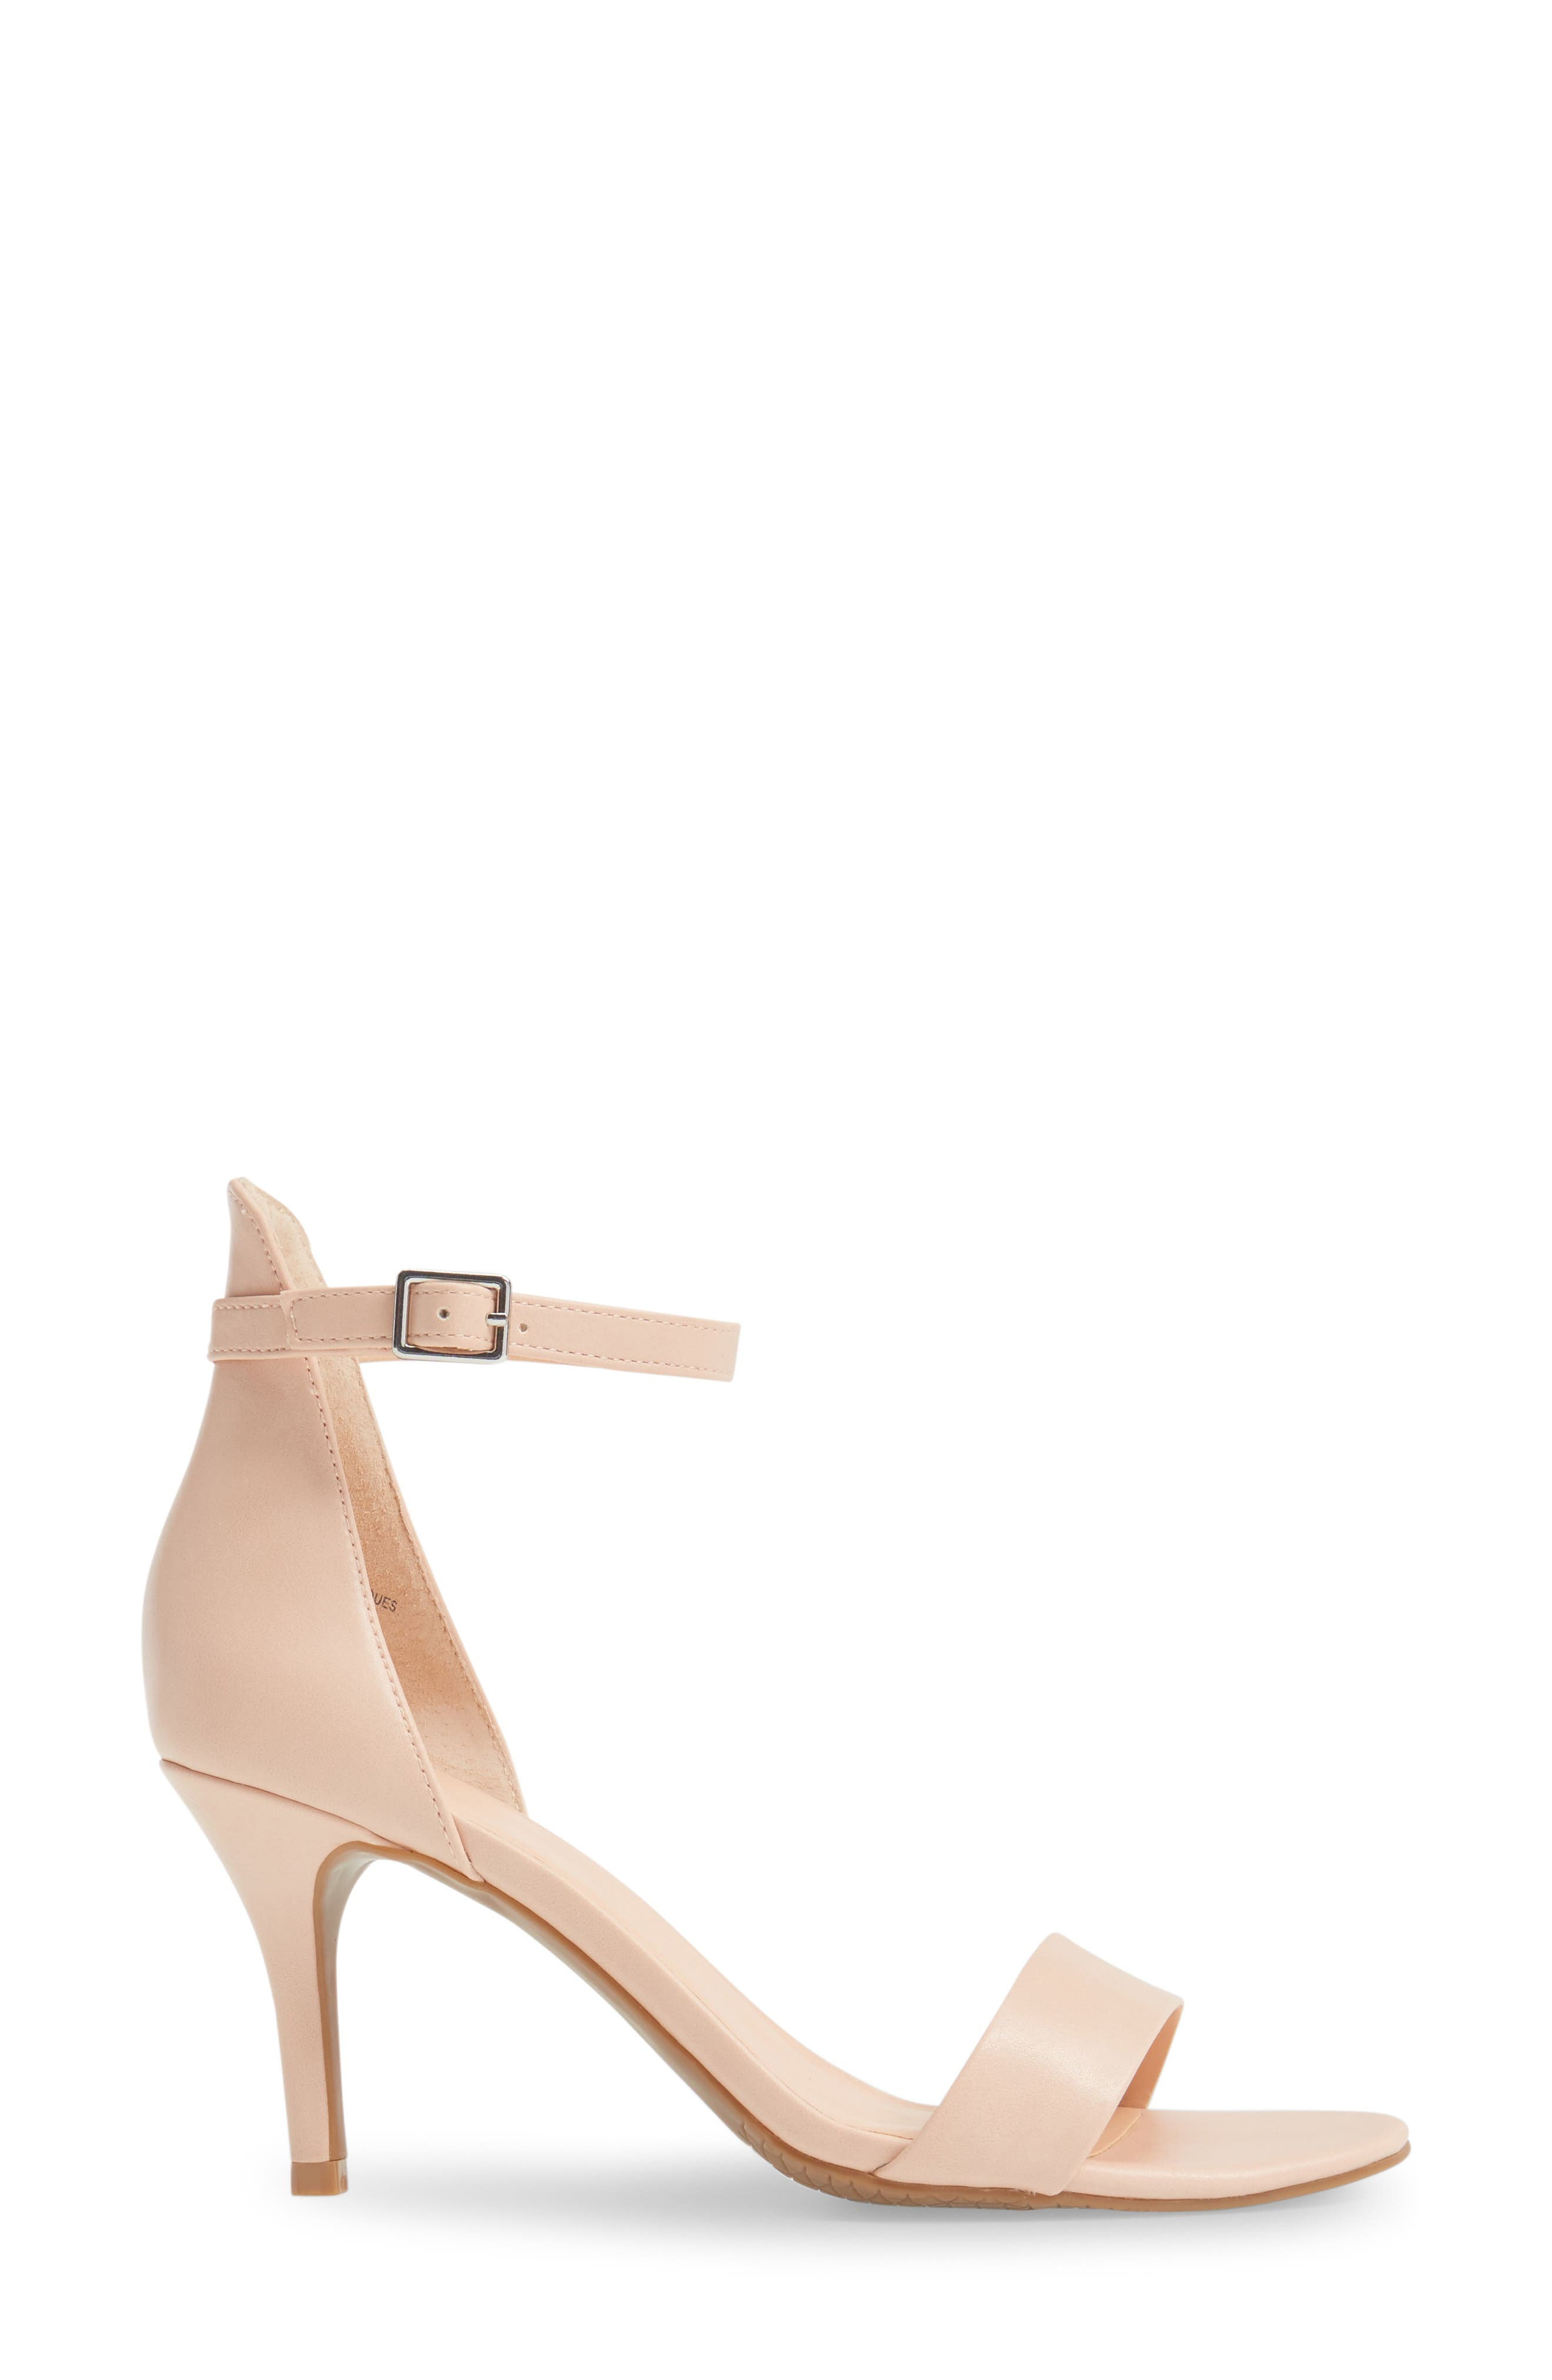 'Luminate' Open Toe Dress Sandal,                             Alternate thumbnail 3, color,                             Blush Faux Leather